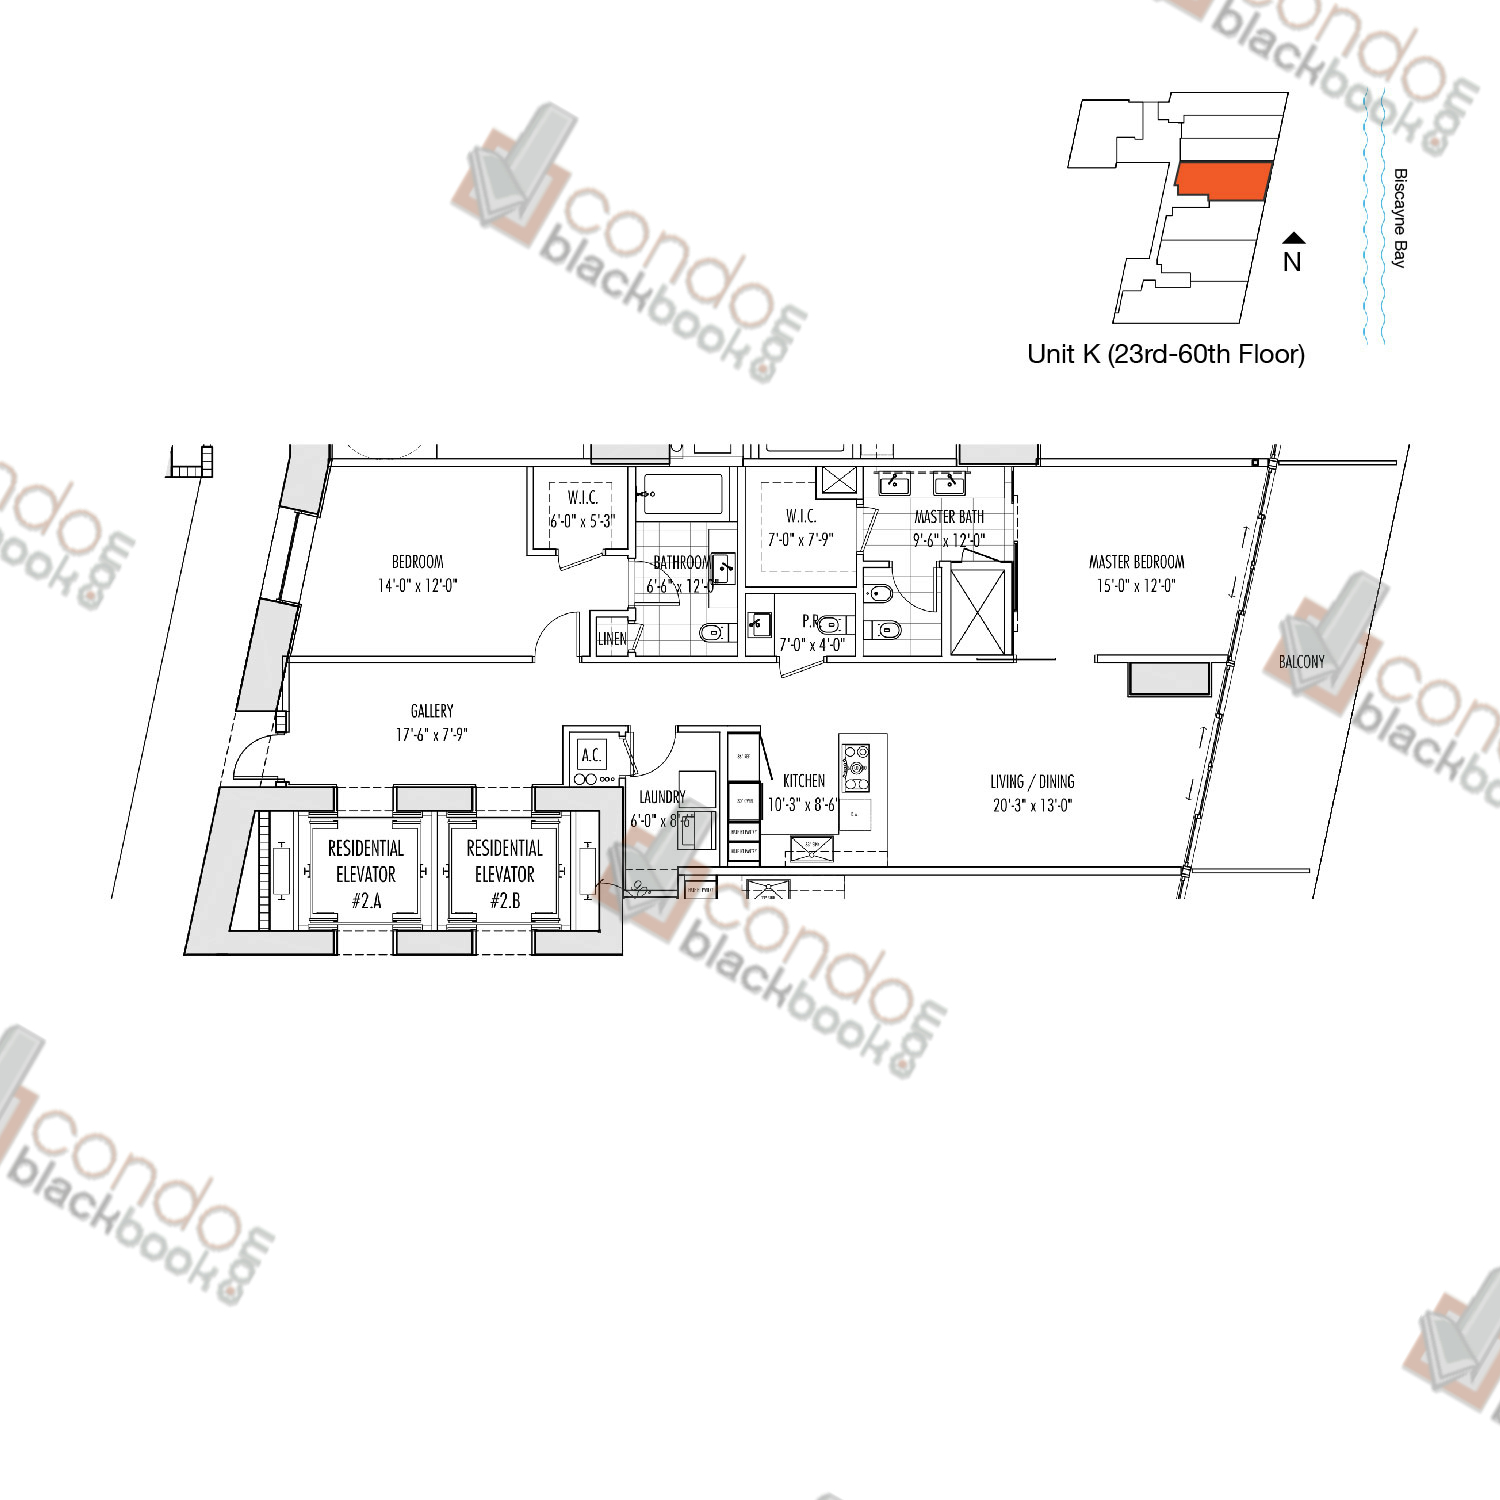 Floor plan for Marquis Downtown Miami Miami, model K, line 04, 2/2.5 bedrooms, 1,477 sq ft